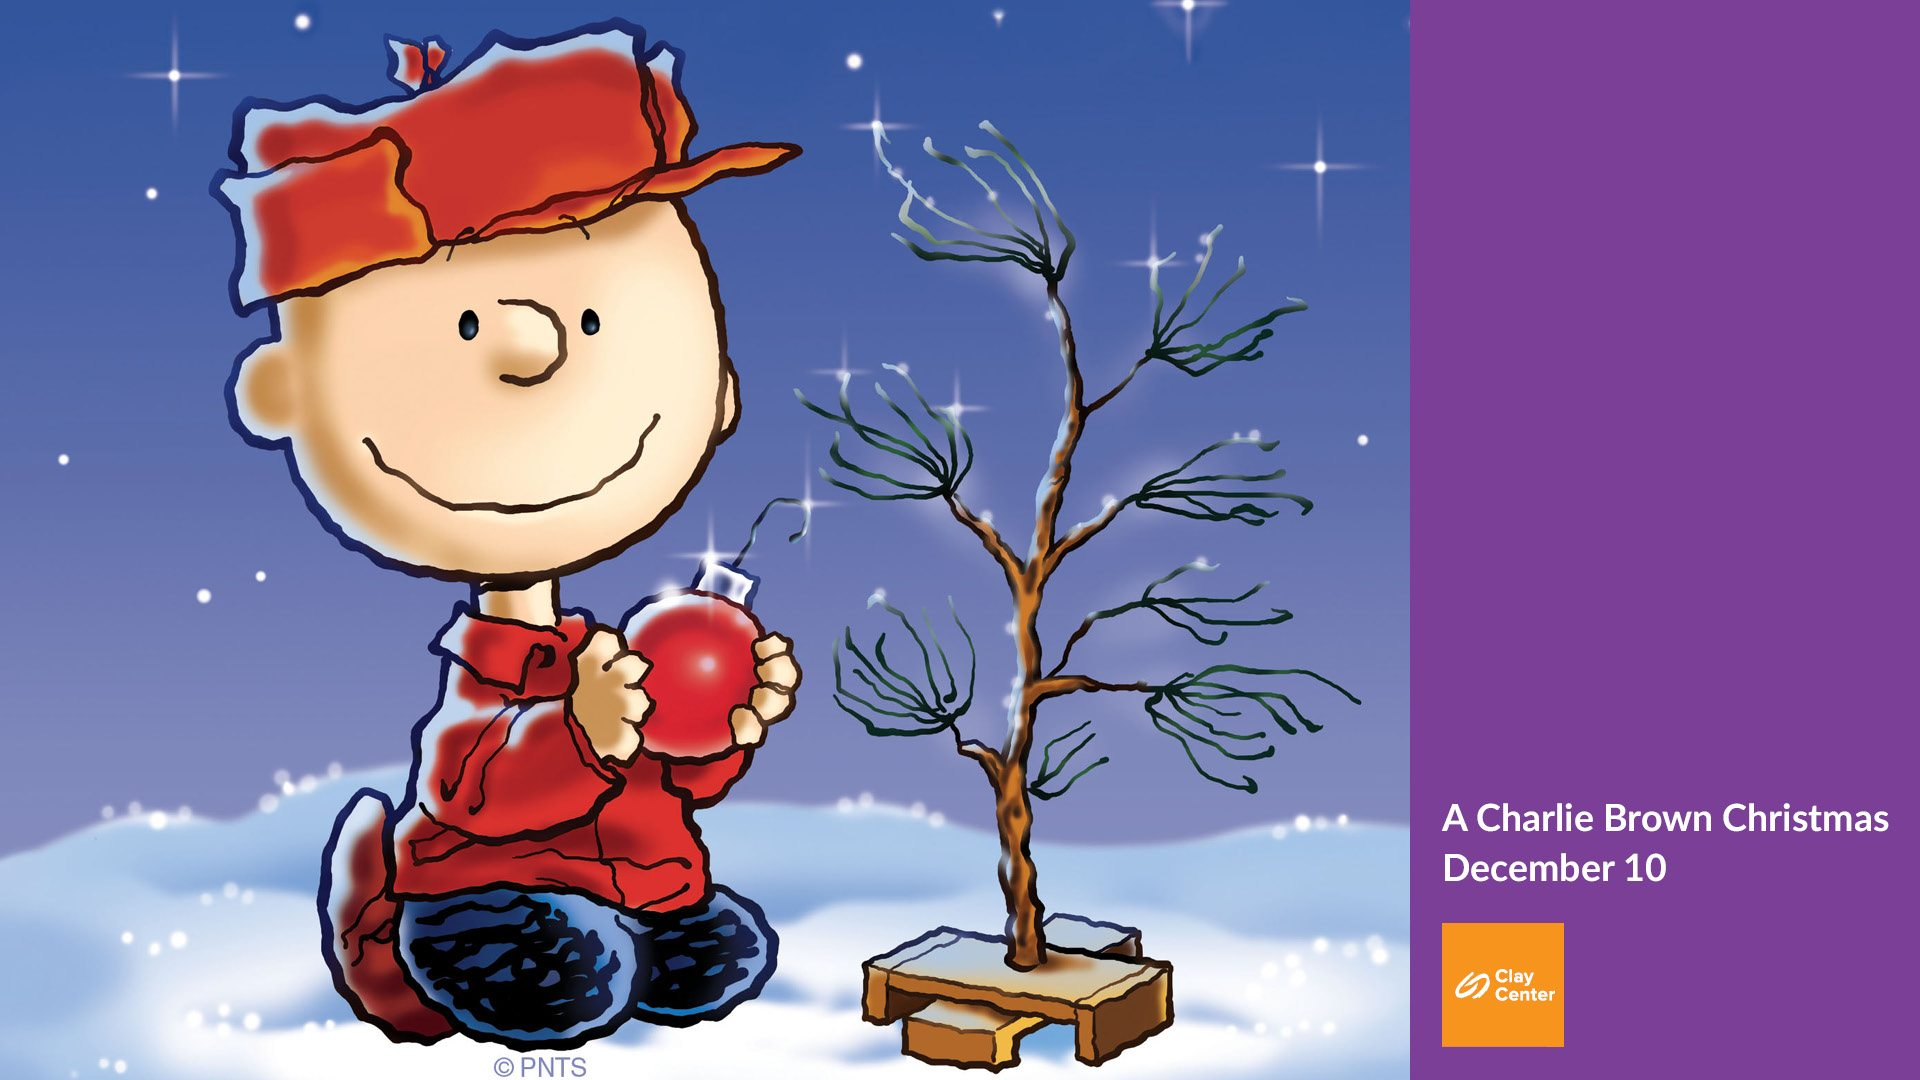 Snoopy Fall Wallpaper A Charlie Brown Christmas Live Clay Center